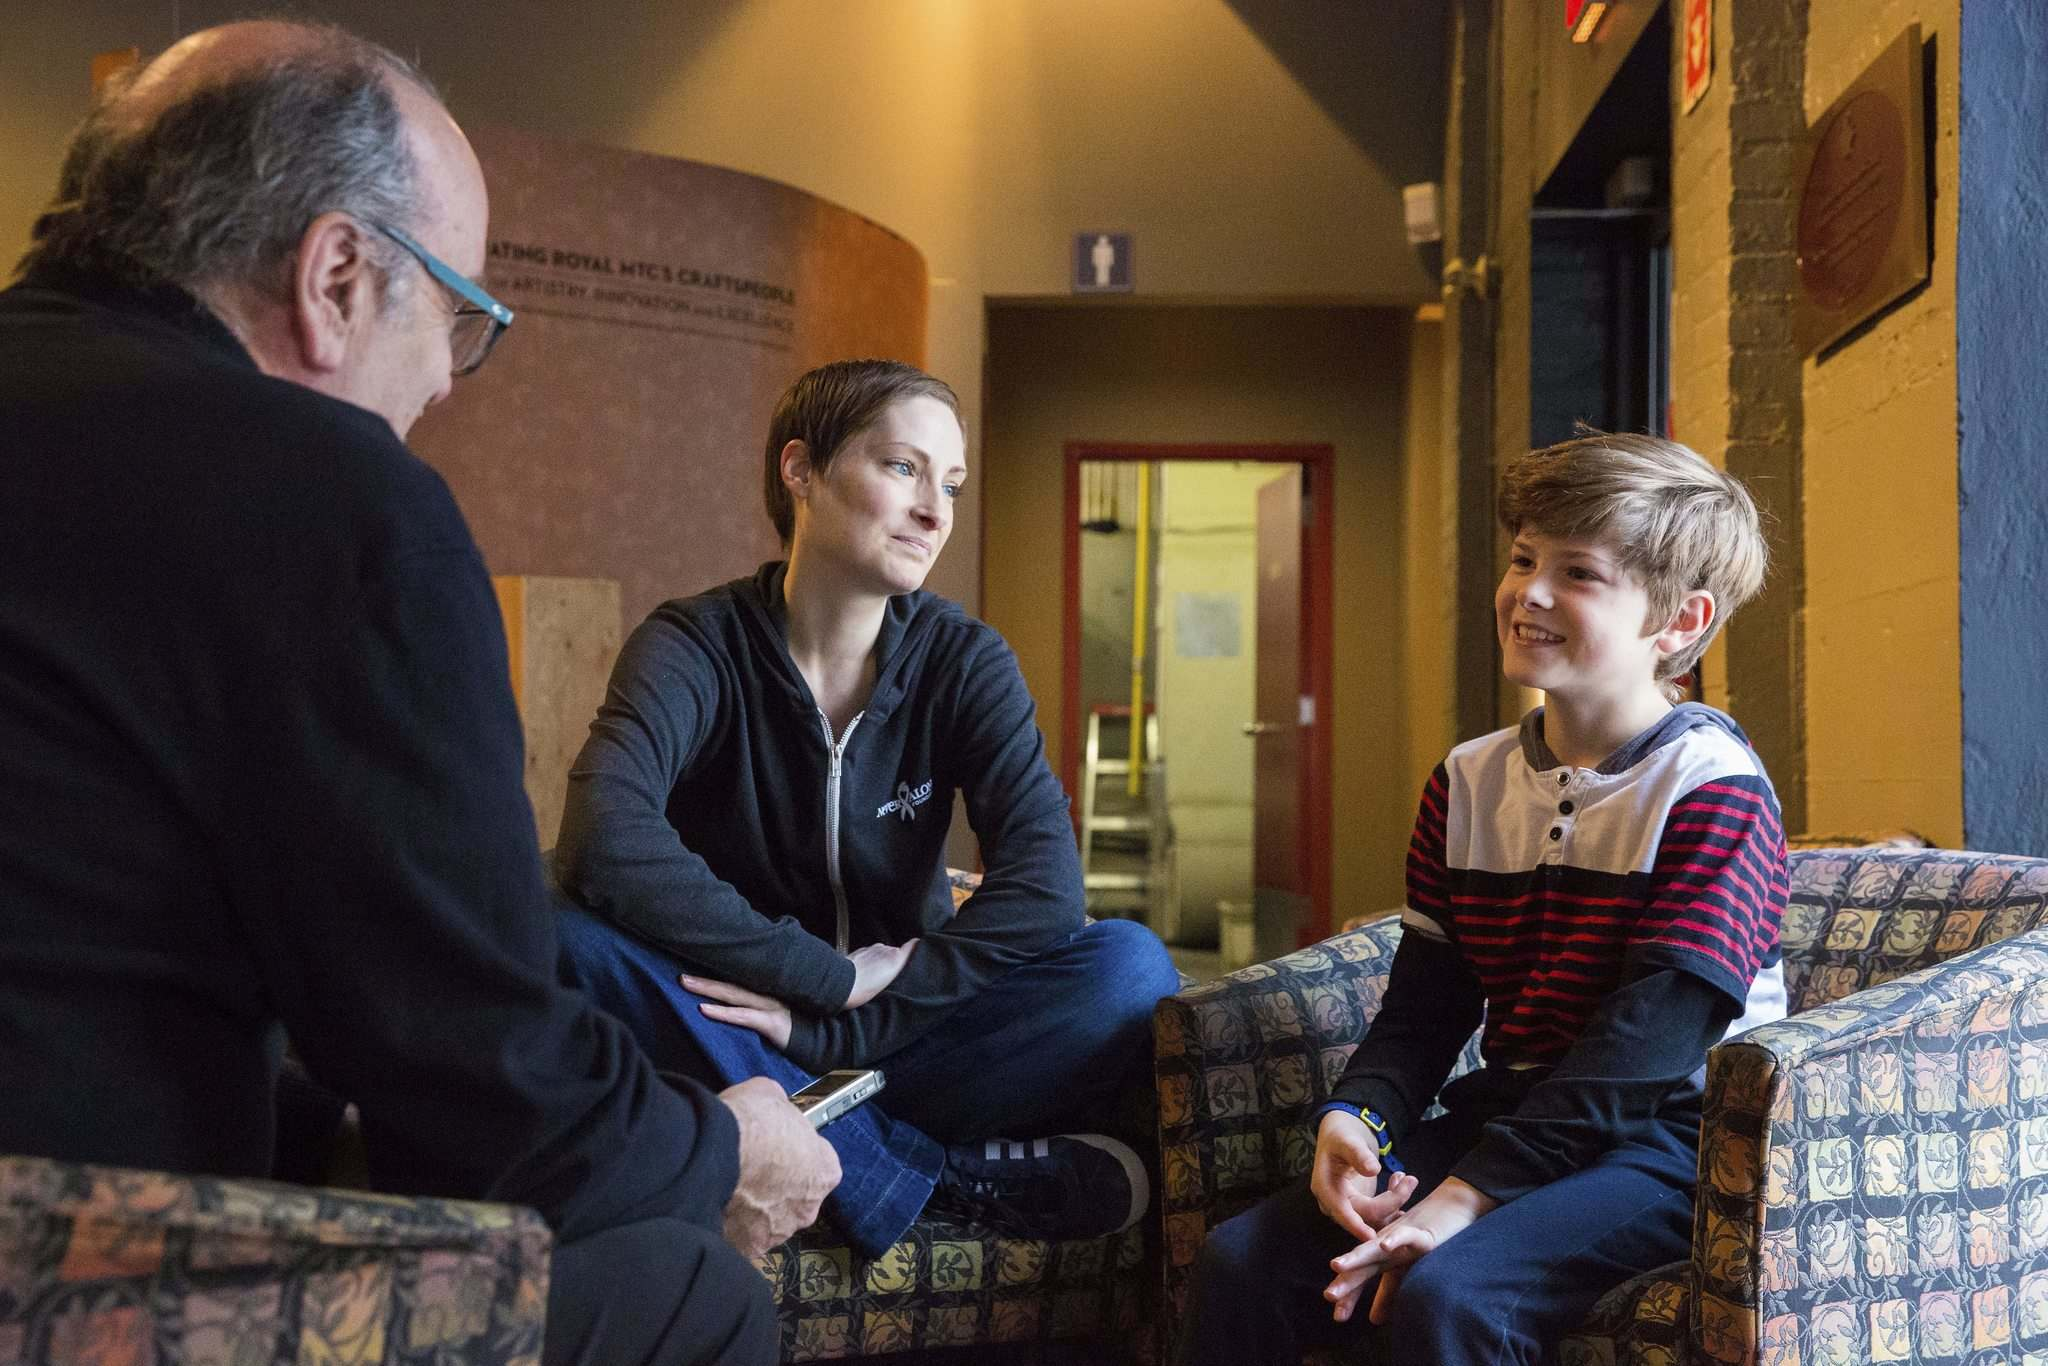 MIKAELA MACKENZIE / WINNIPEG FREE PRESS</p><p>Wreford and her son, Elliot, took a break from rehearsal and sat down to speak with Free Press arts reporter Randall King (left) at the Tom Hendry Warehouse Theatre lobby.</p></p>